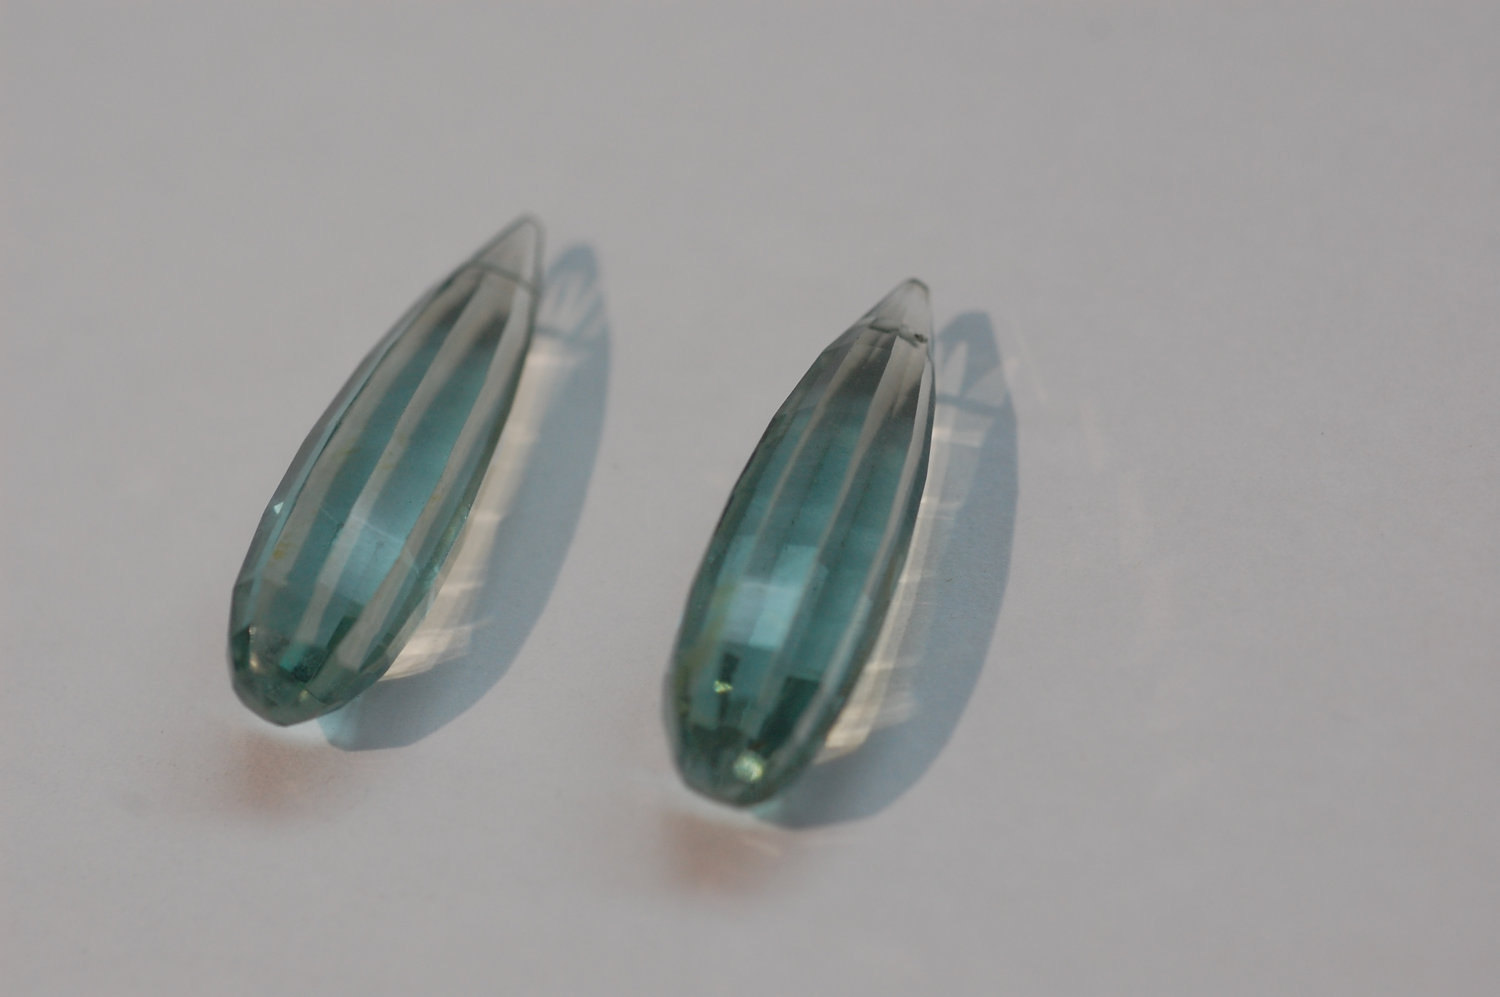 Aquamarine Hydro Quartz Long Drops Faceted